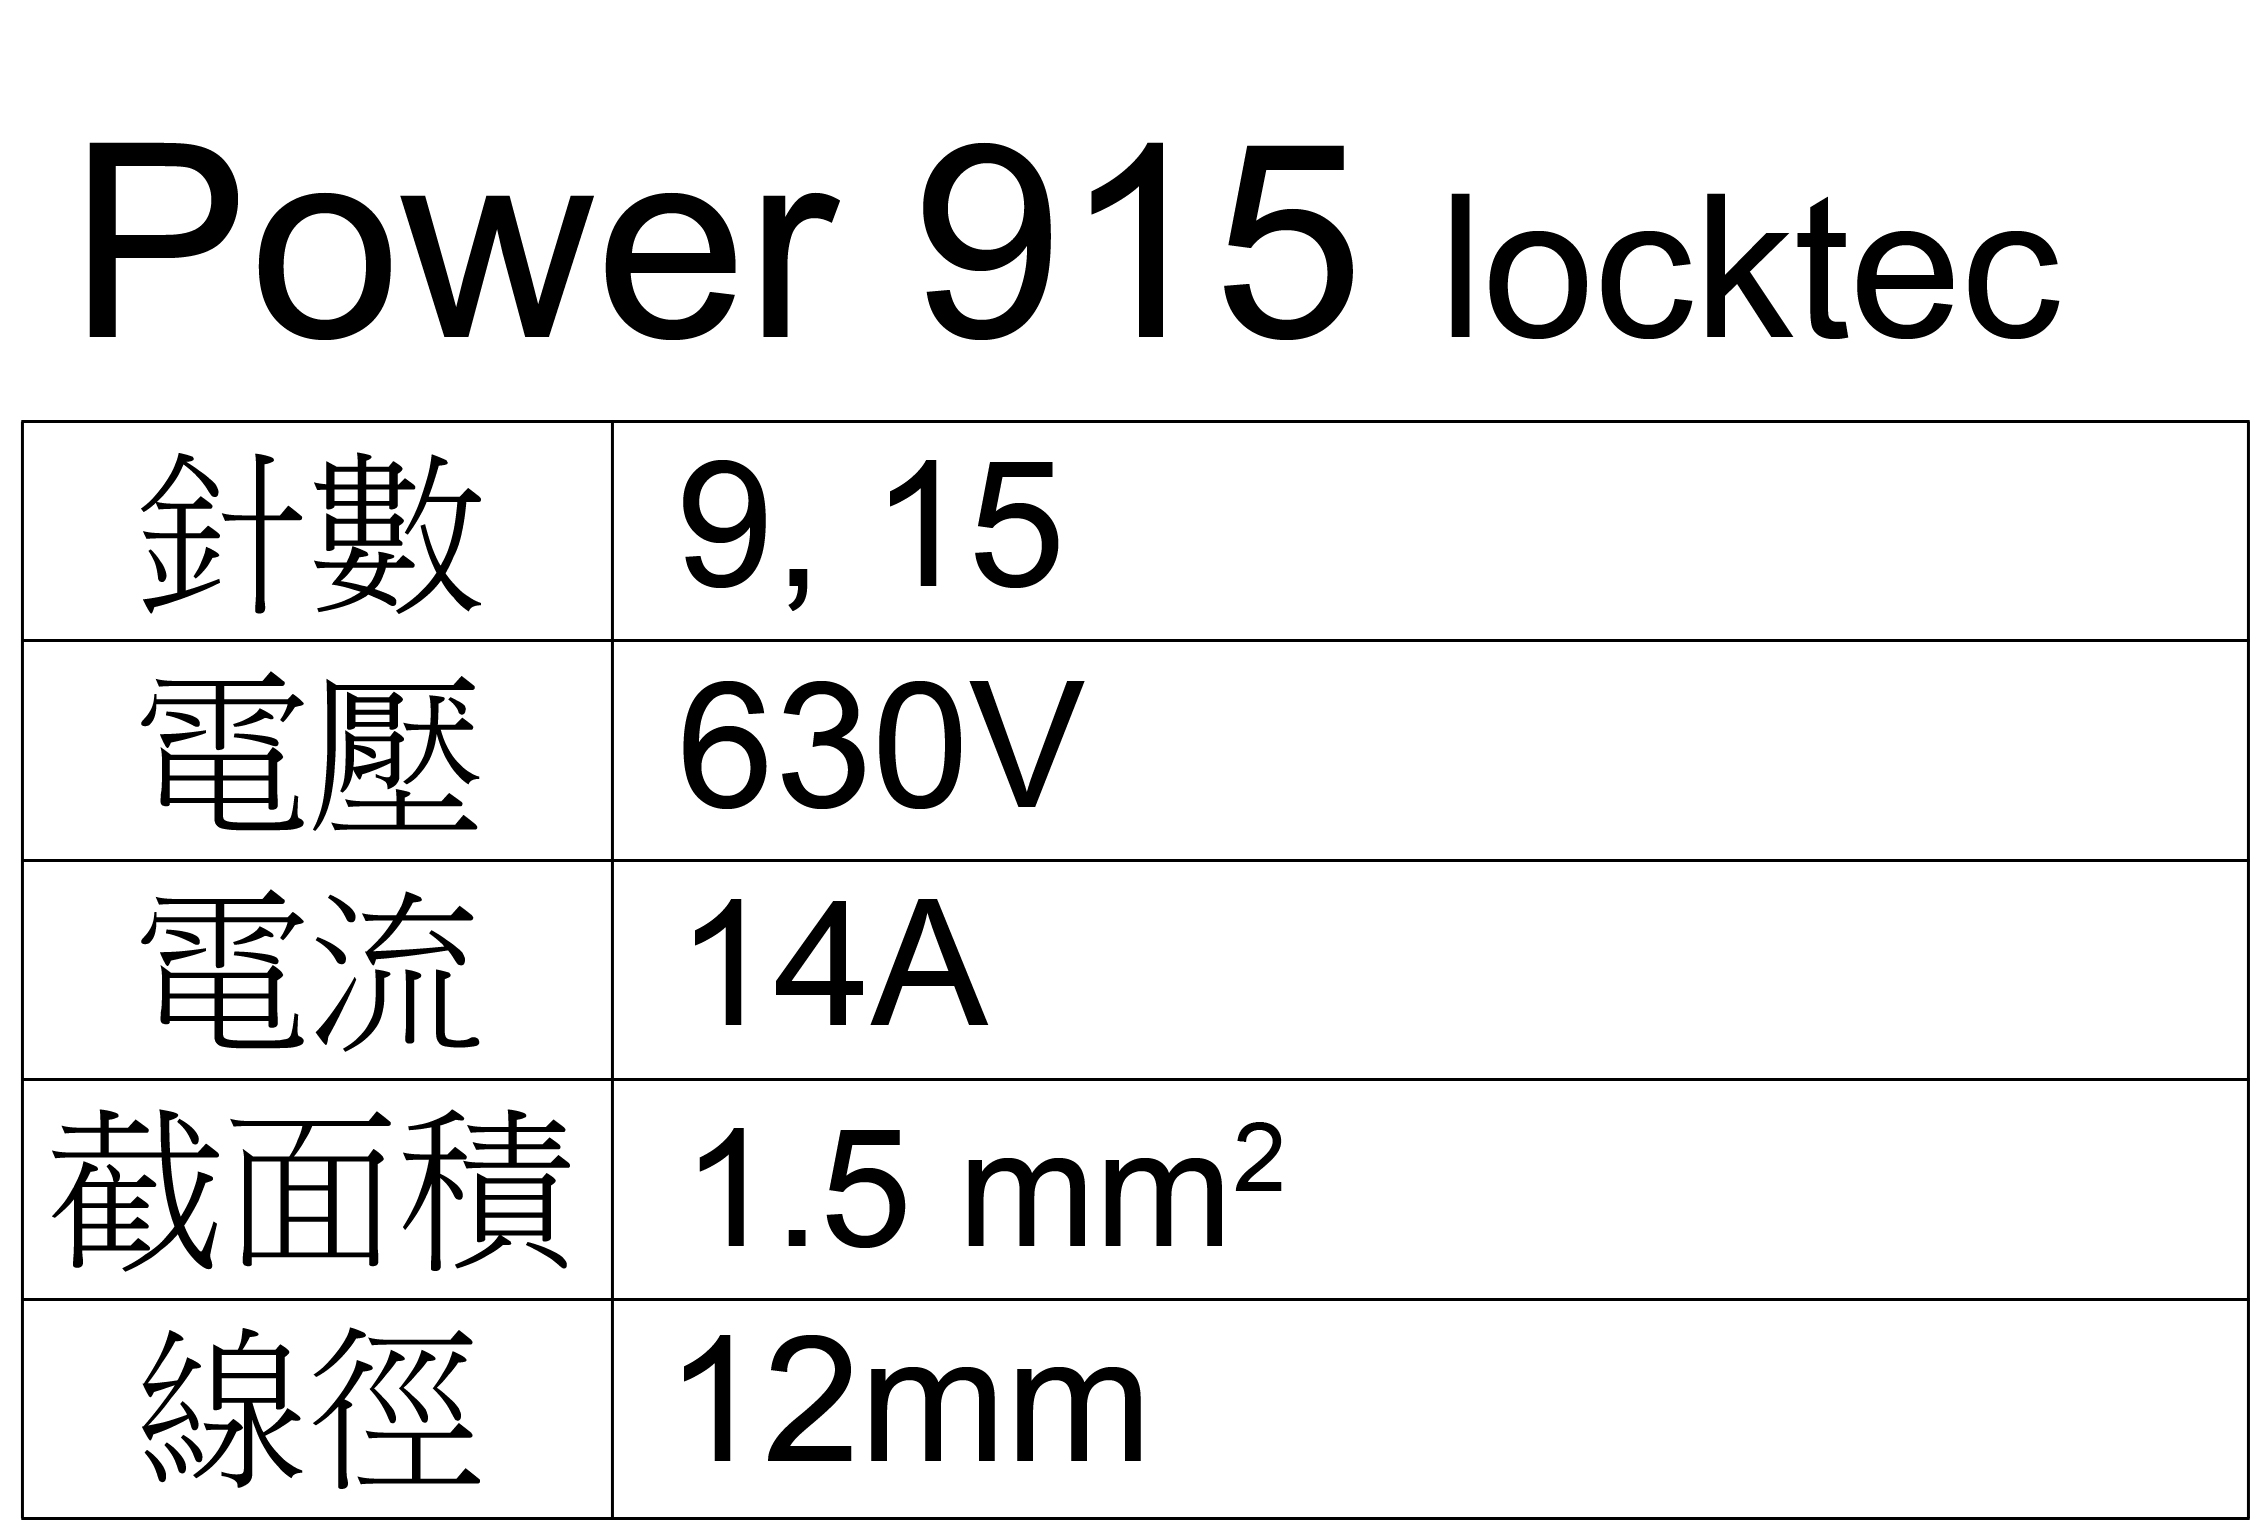 hcy-intercontec-power 915 locktec